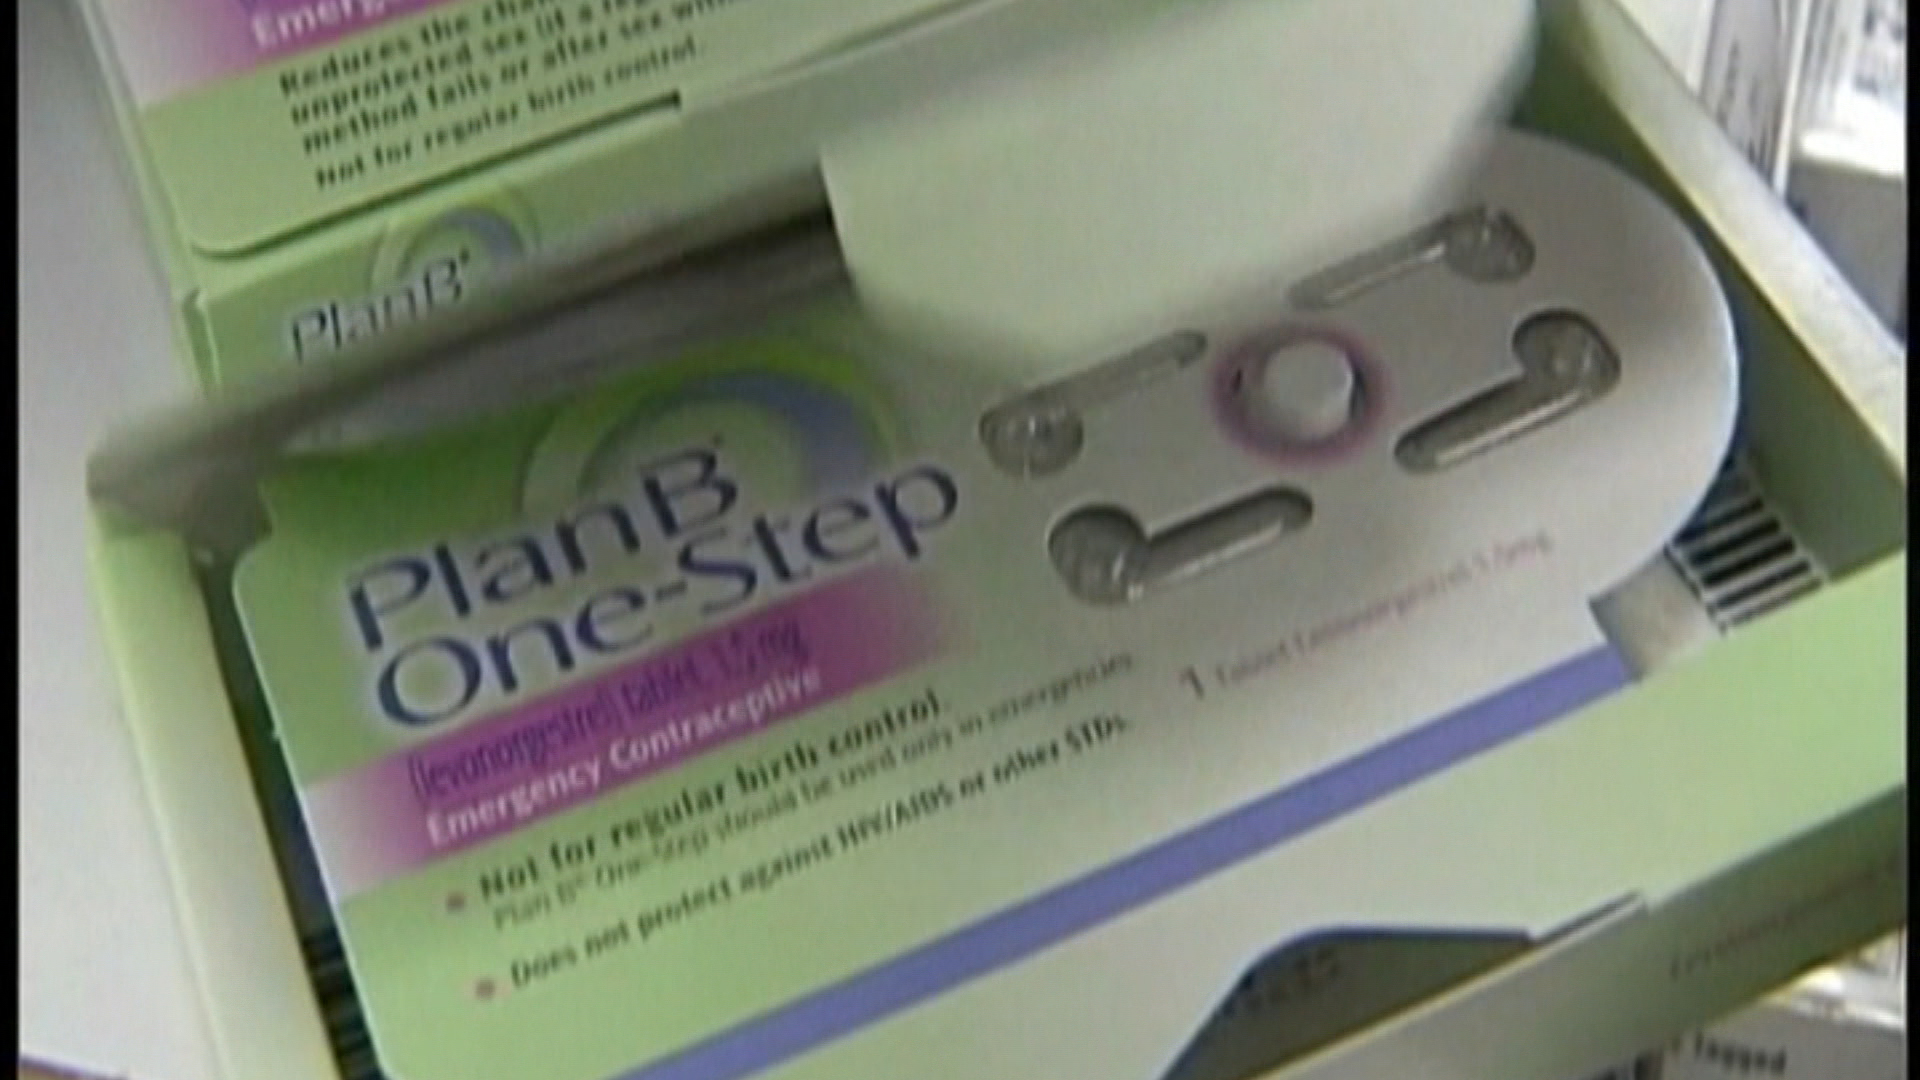 Trashing birth control for religious reasons?